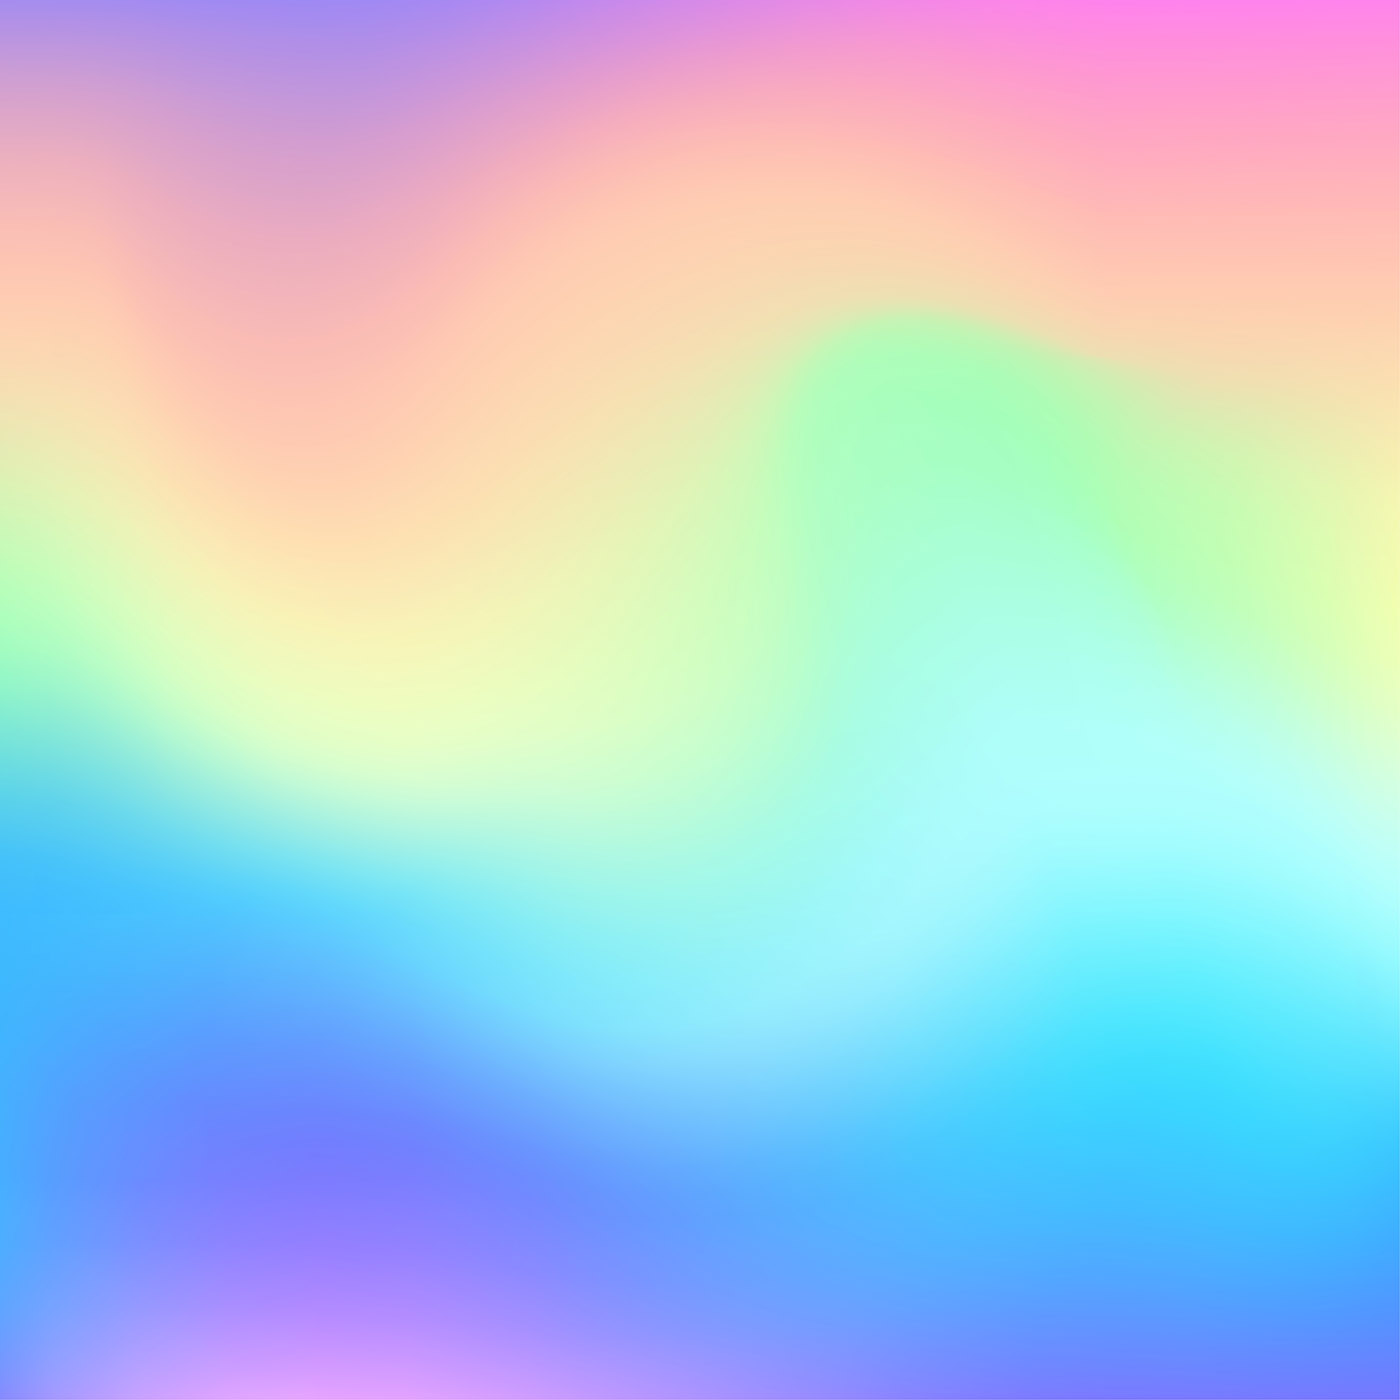 Bright Colors Wallpaper 3d Holographic Wallpaper Vector Download Free Vector Art